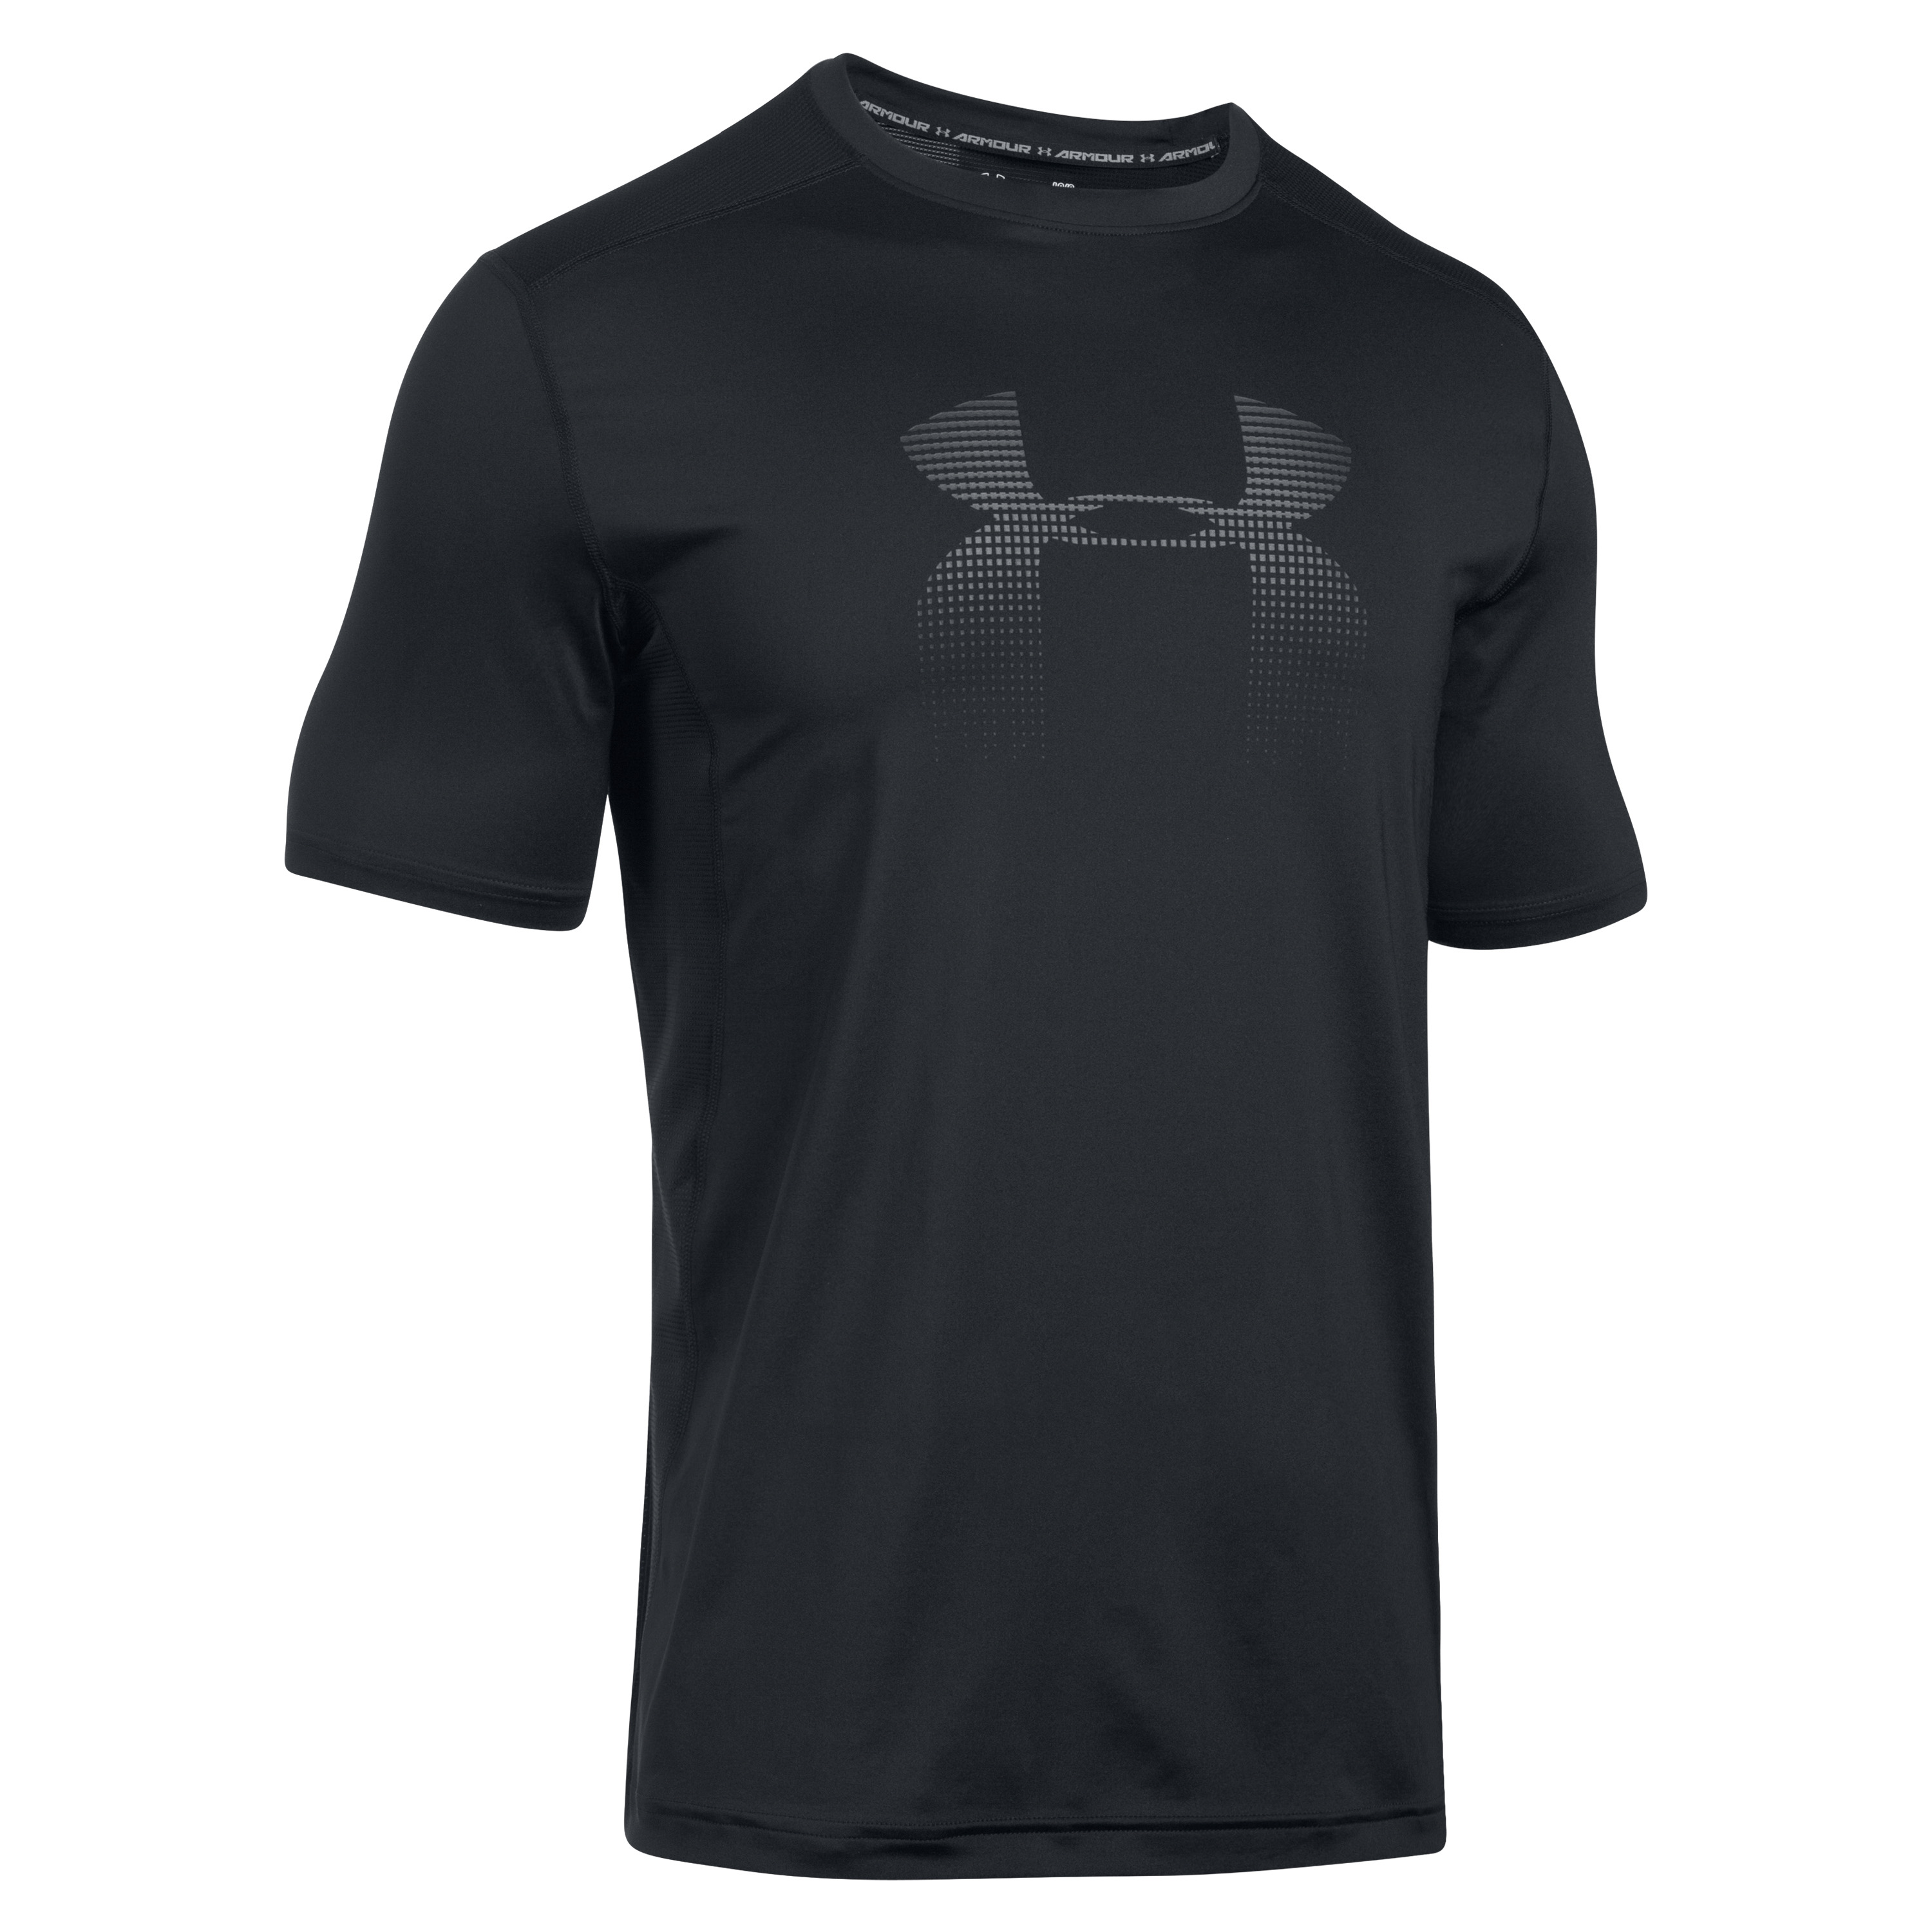 Under Armour T-Shirt Raid Graphic schwarz